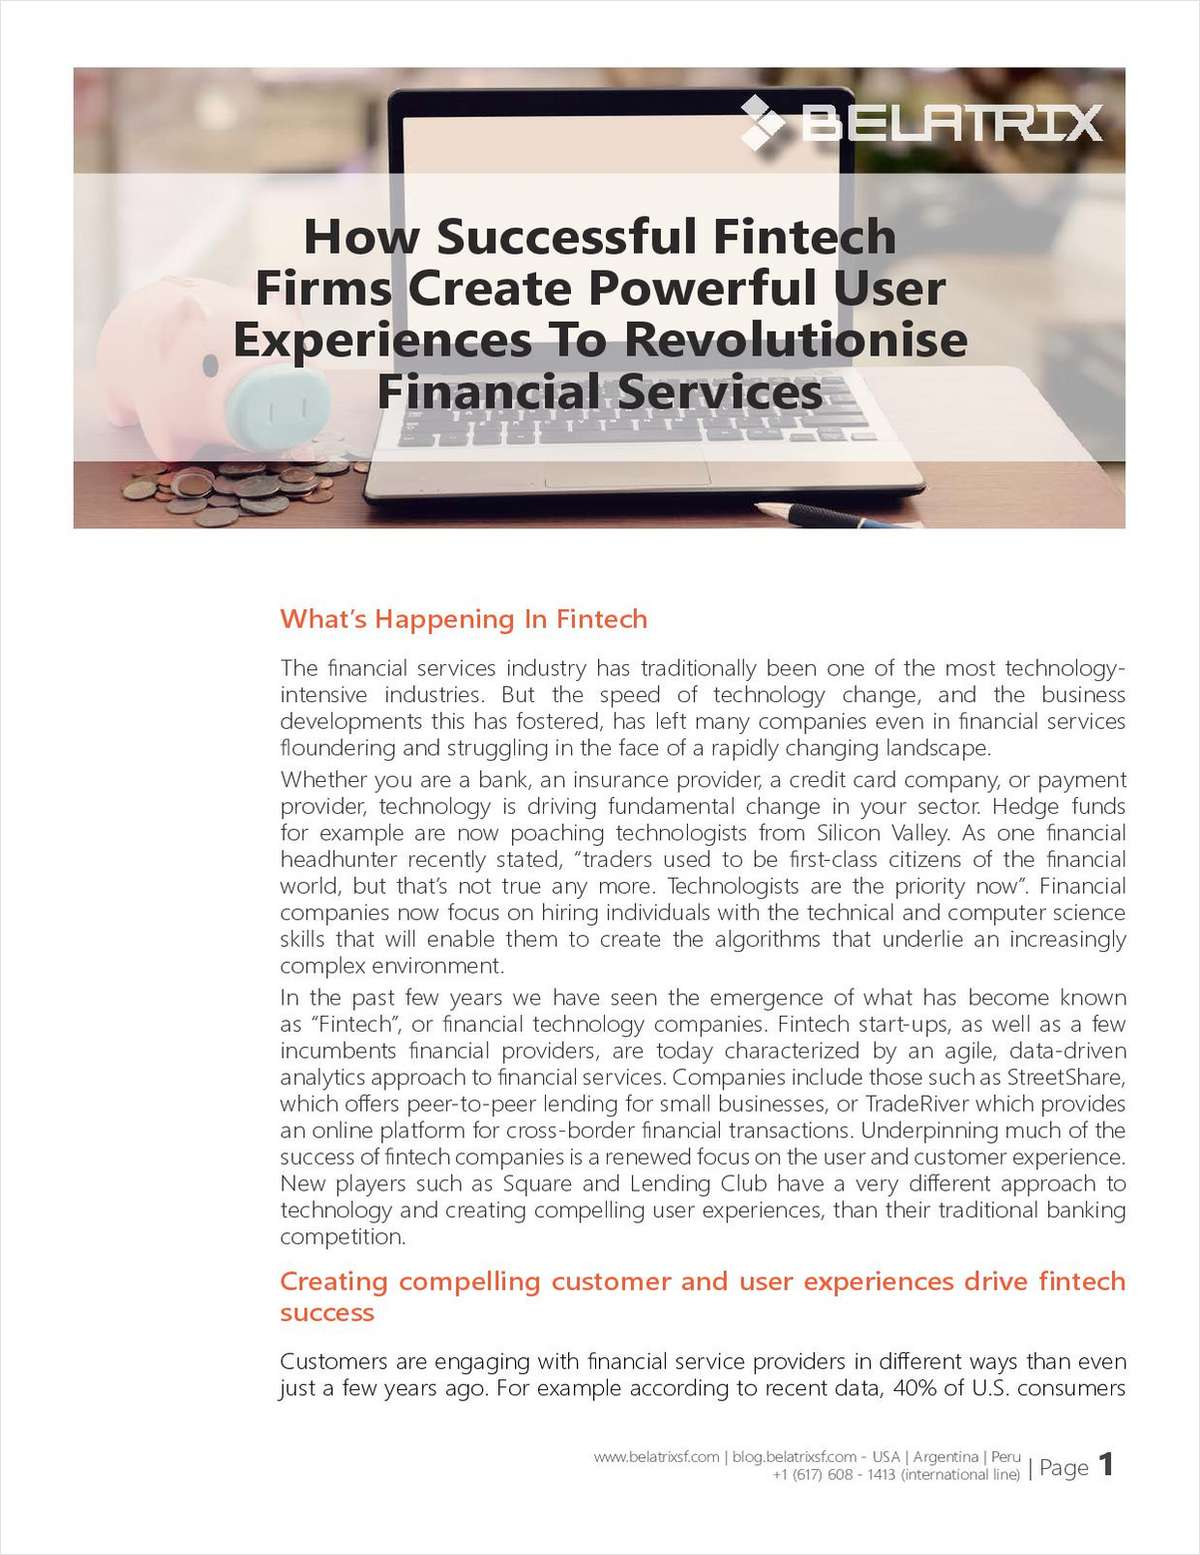 How Successful Fintech Firms Create Powerful User Experiences to Revolutionize Financial Services